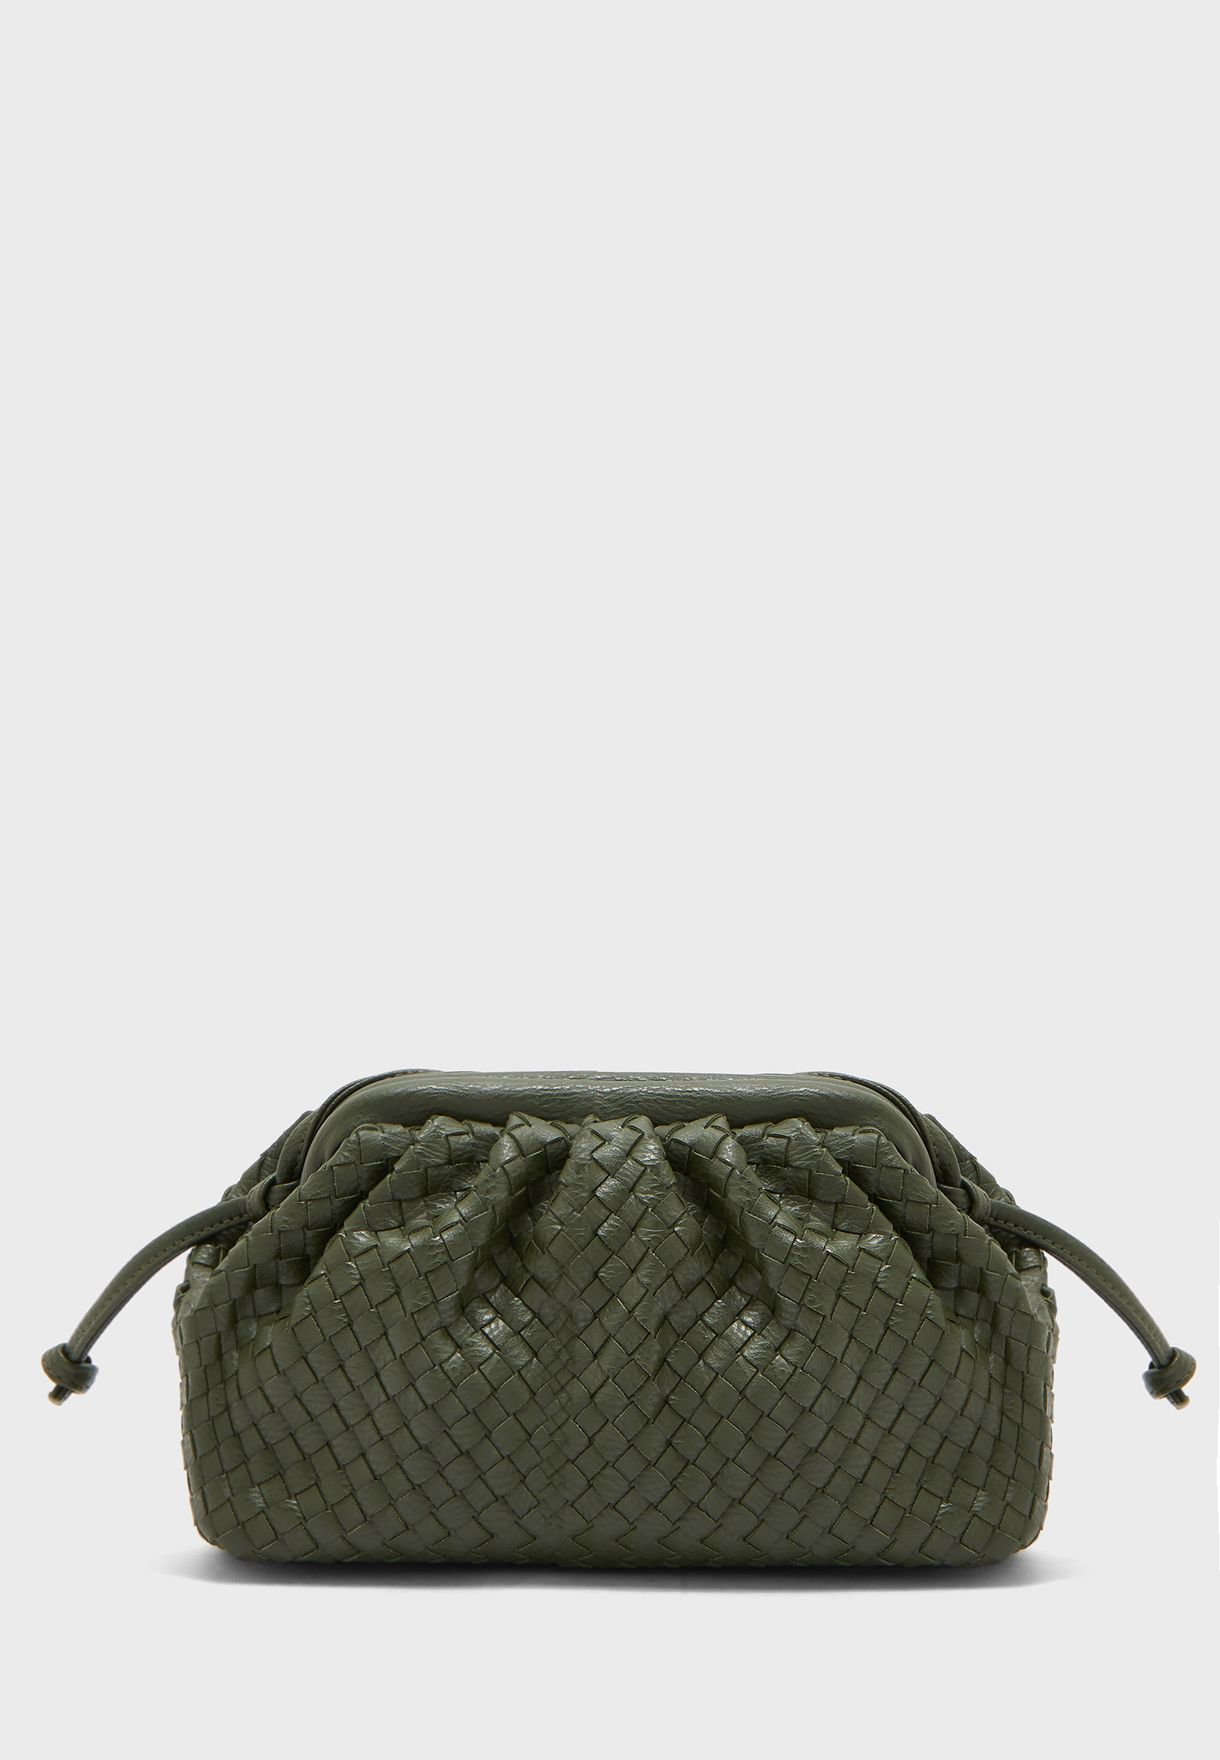 Weave Pouch Bag with Crossbody Strap